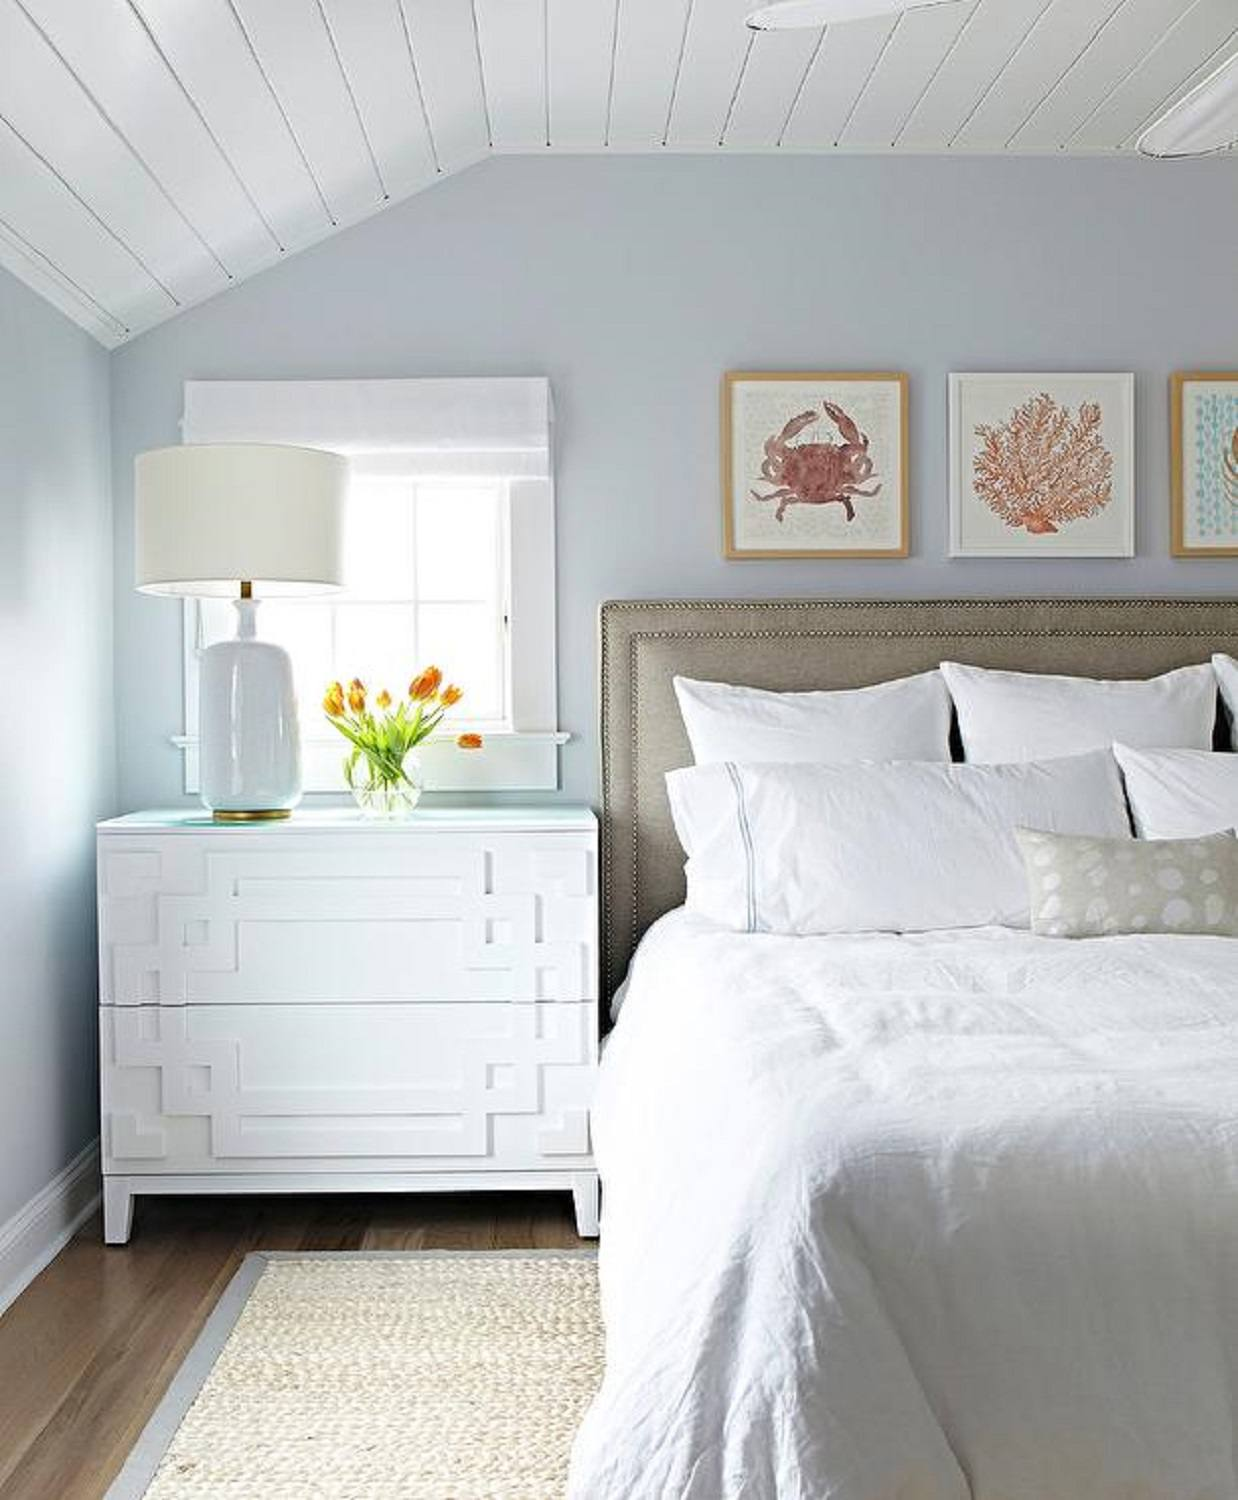 beach design bedroom.  Bedroom On Beach Design Bedroom B